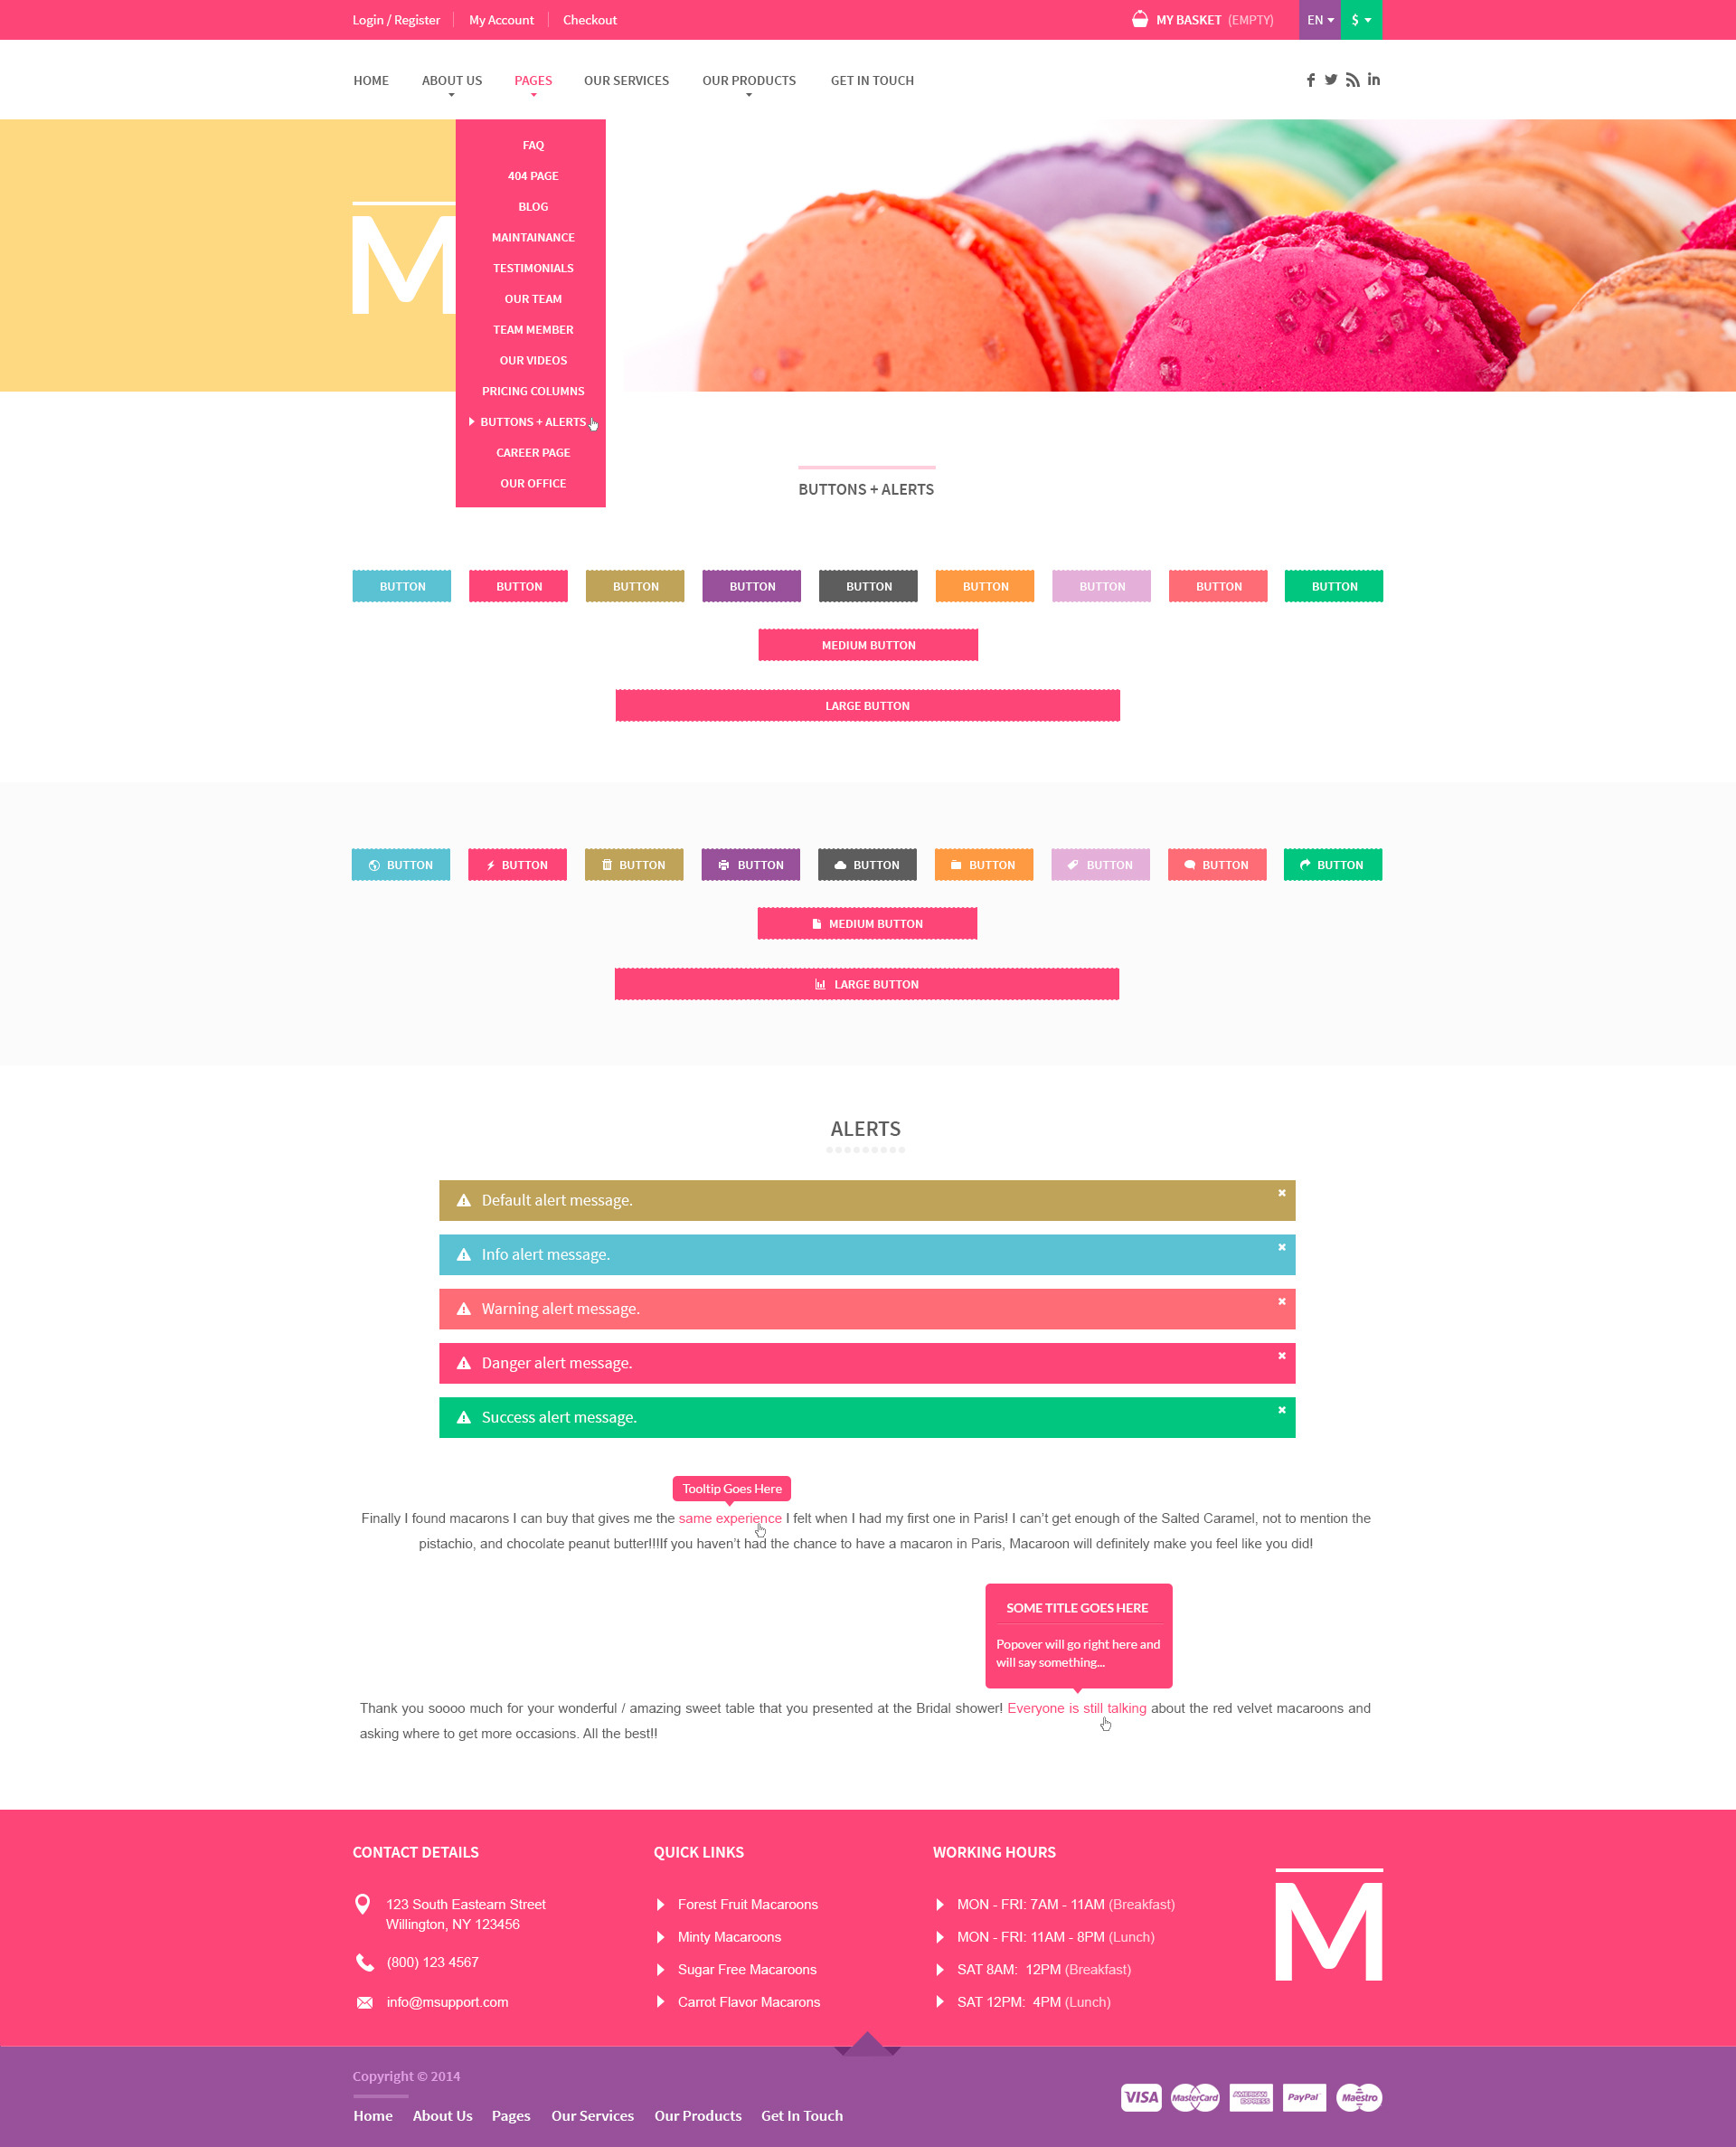 Magnificent 1 Page Proposal Template Tiny 1 Page Resume Format For Freshers Square 10 Tips For Good Resume Writing 10 Window Envelope Template Young 100 Chart Template Green2 Page Resume Header Macaroon   Creative Patisserie HTML Template By ThemePlayers ..